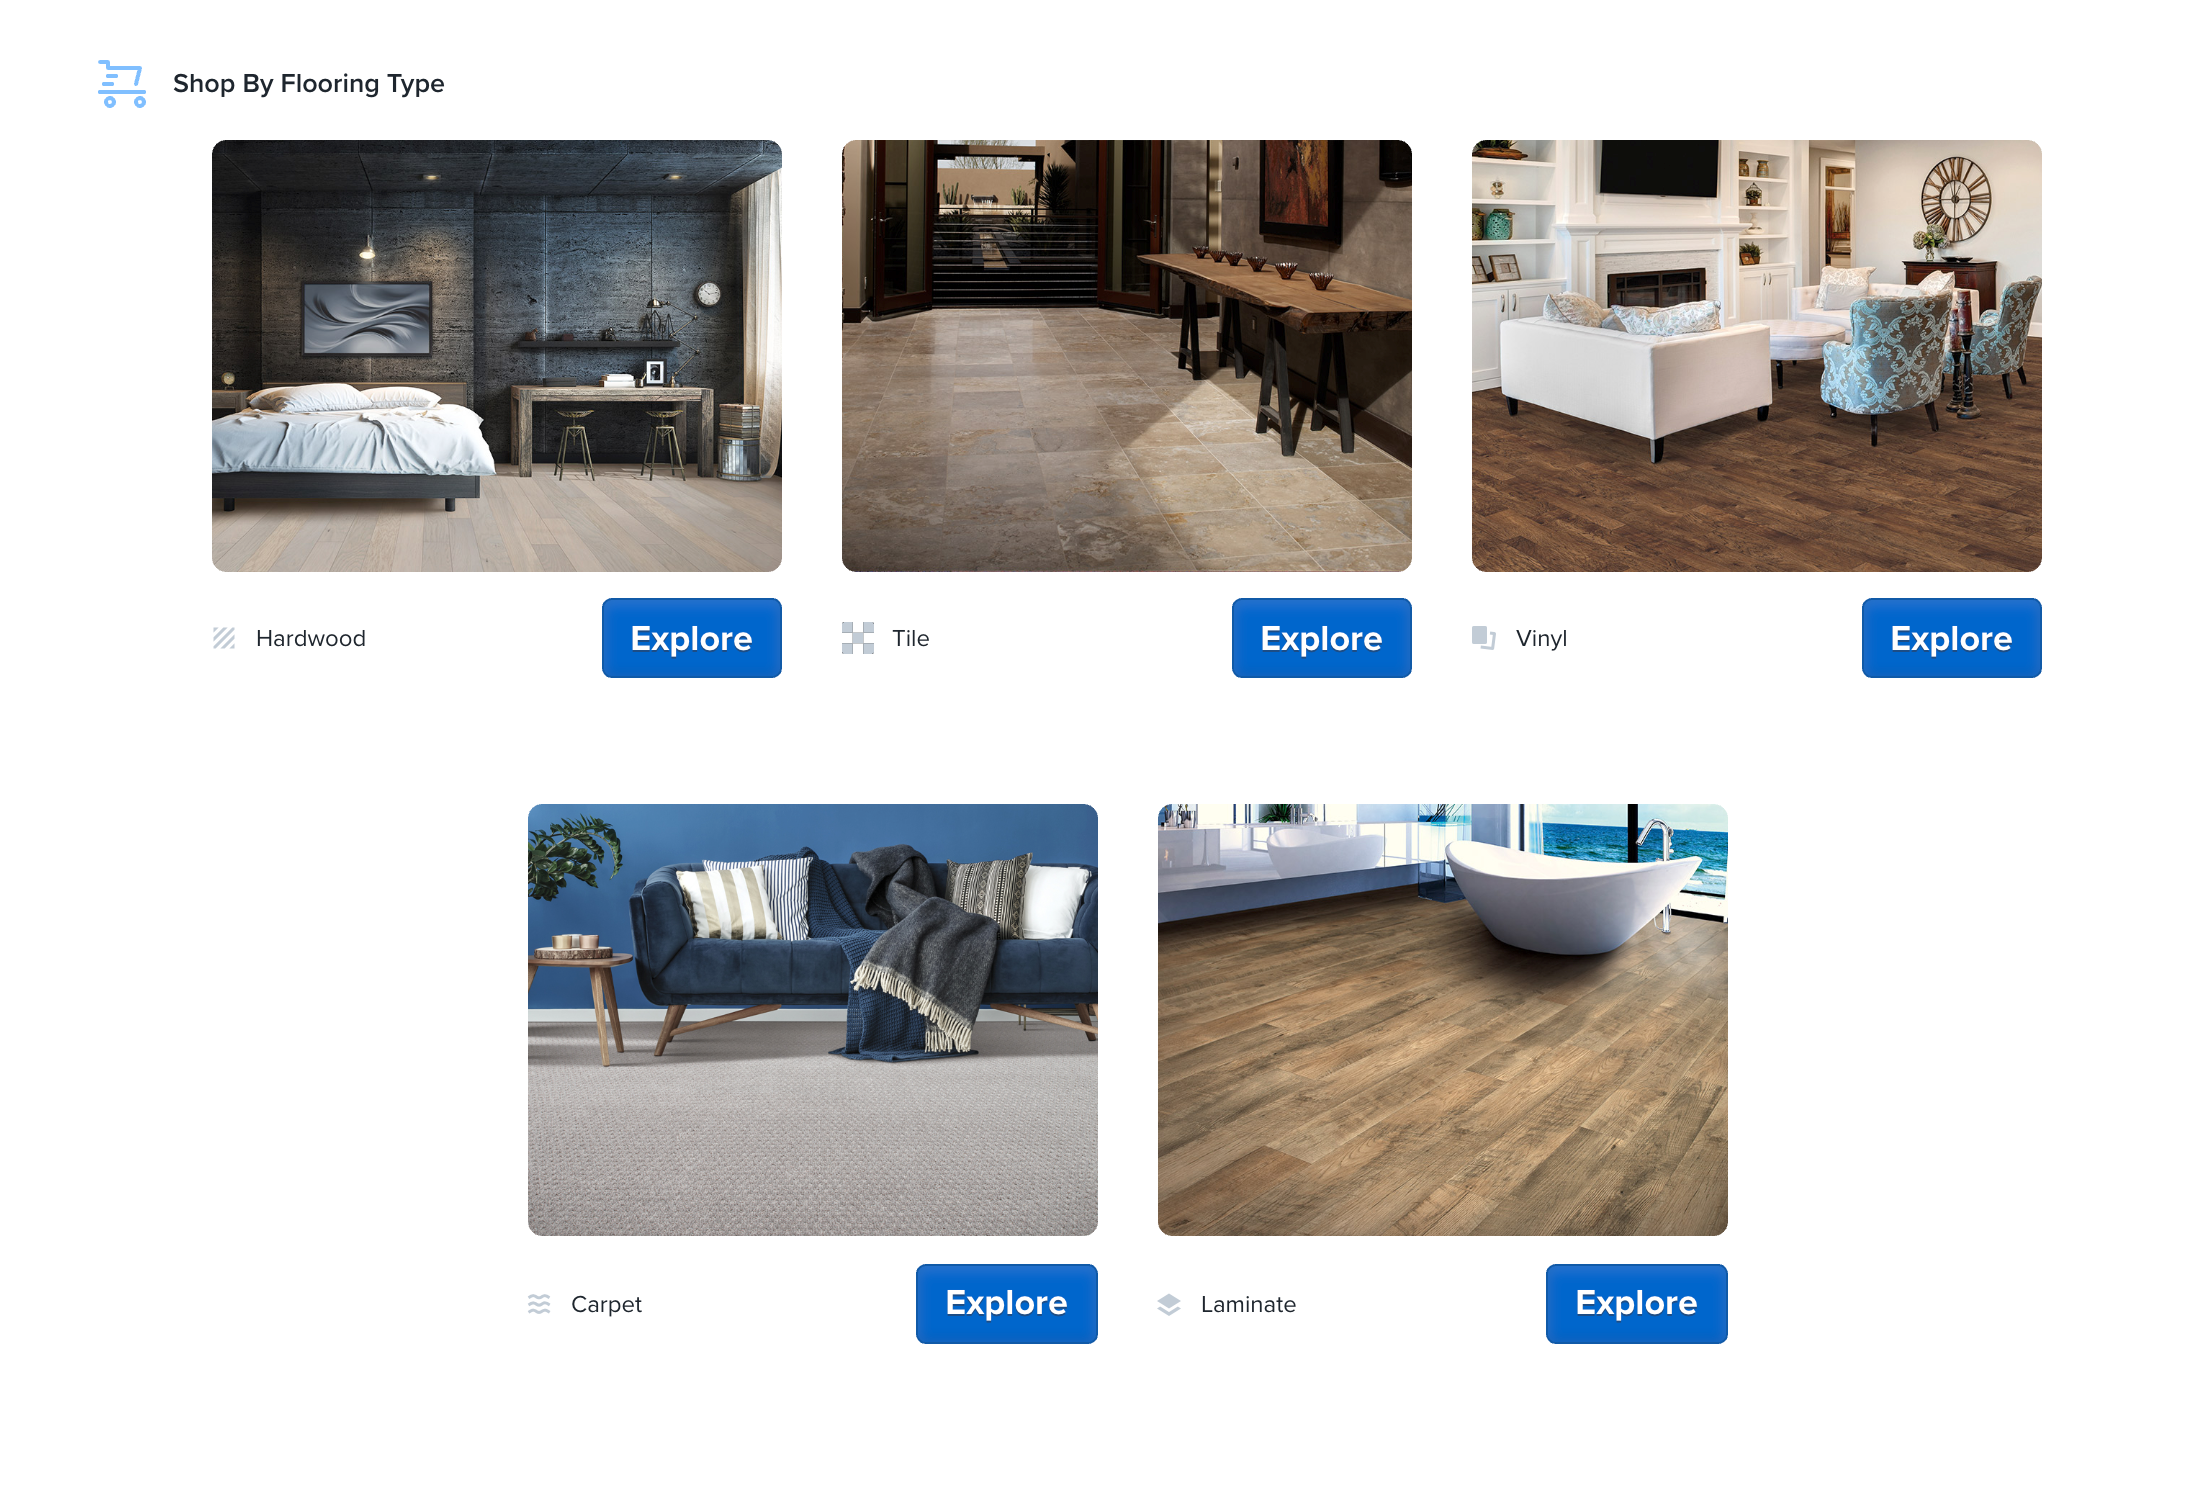 AdHawk raises $13M as it expands into the flooring industry